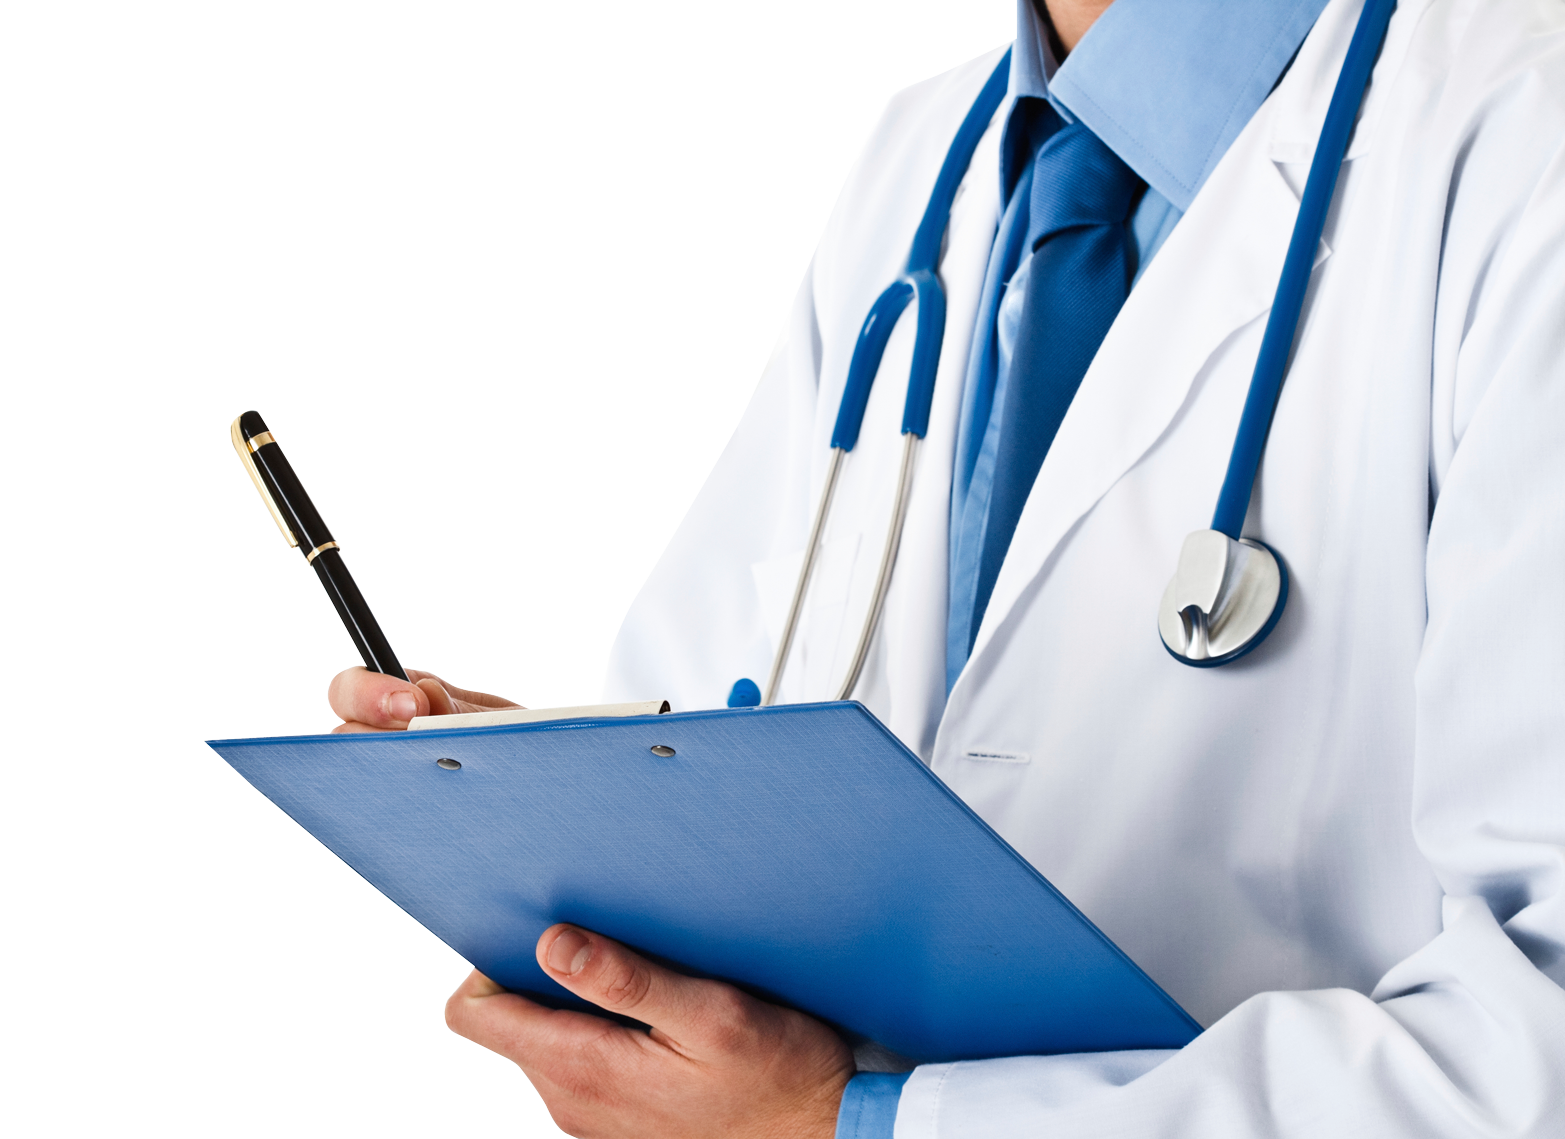 Notepad png. Doctor images free download